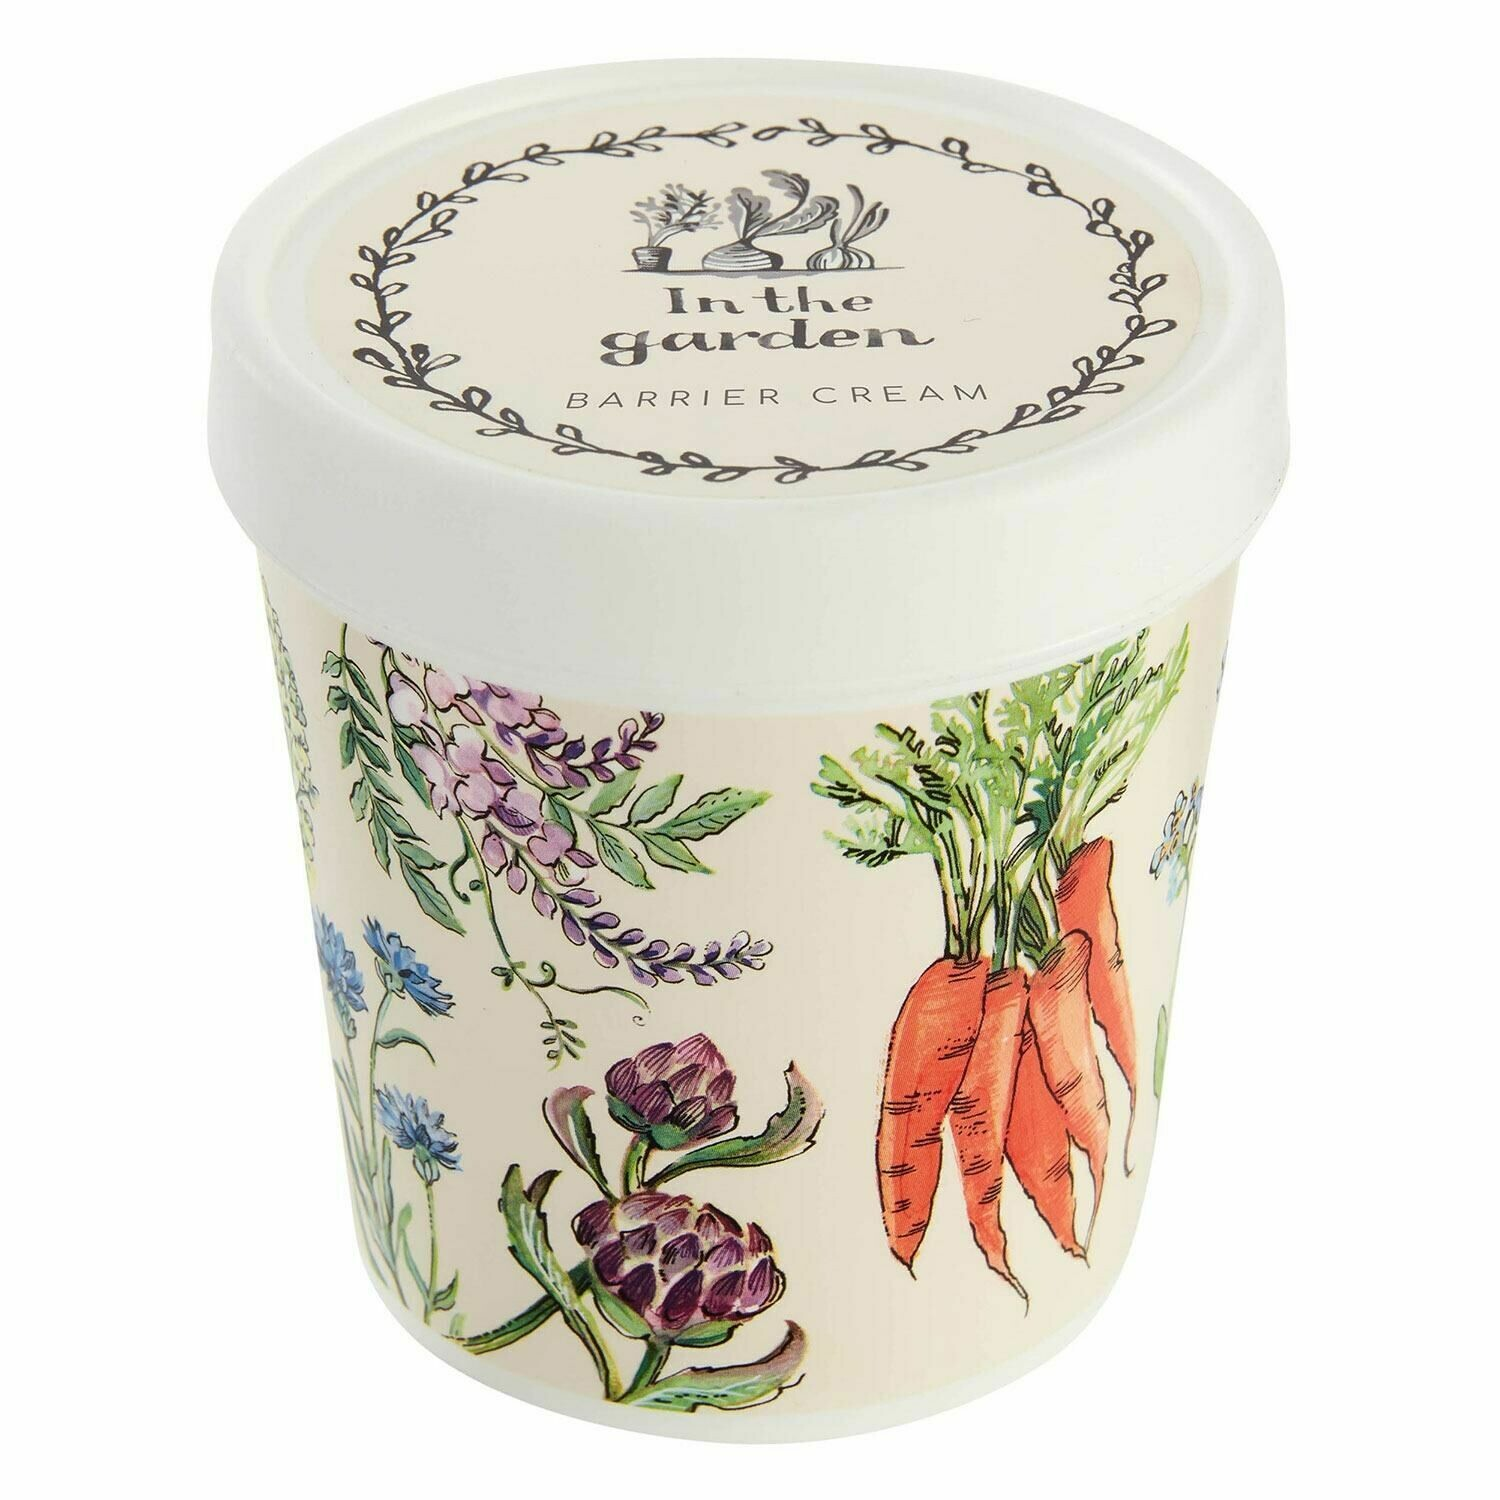 In The Garden -  Barrier Cream